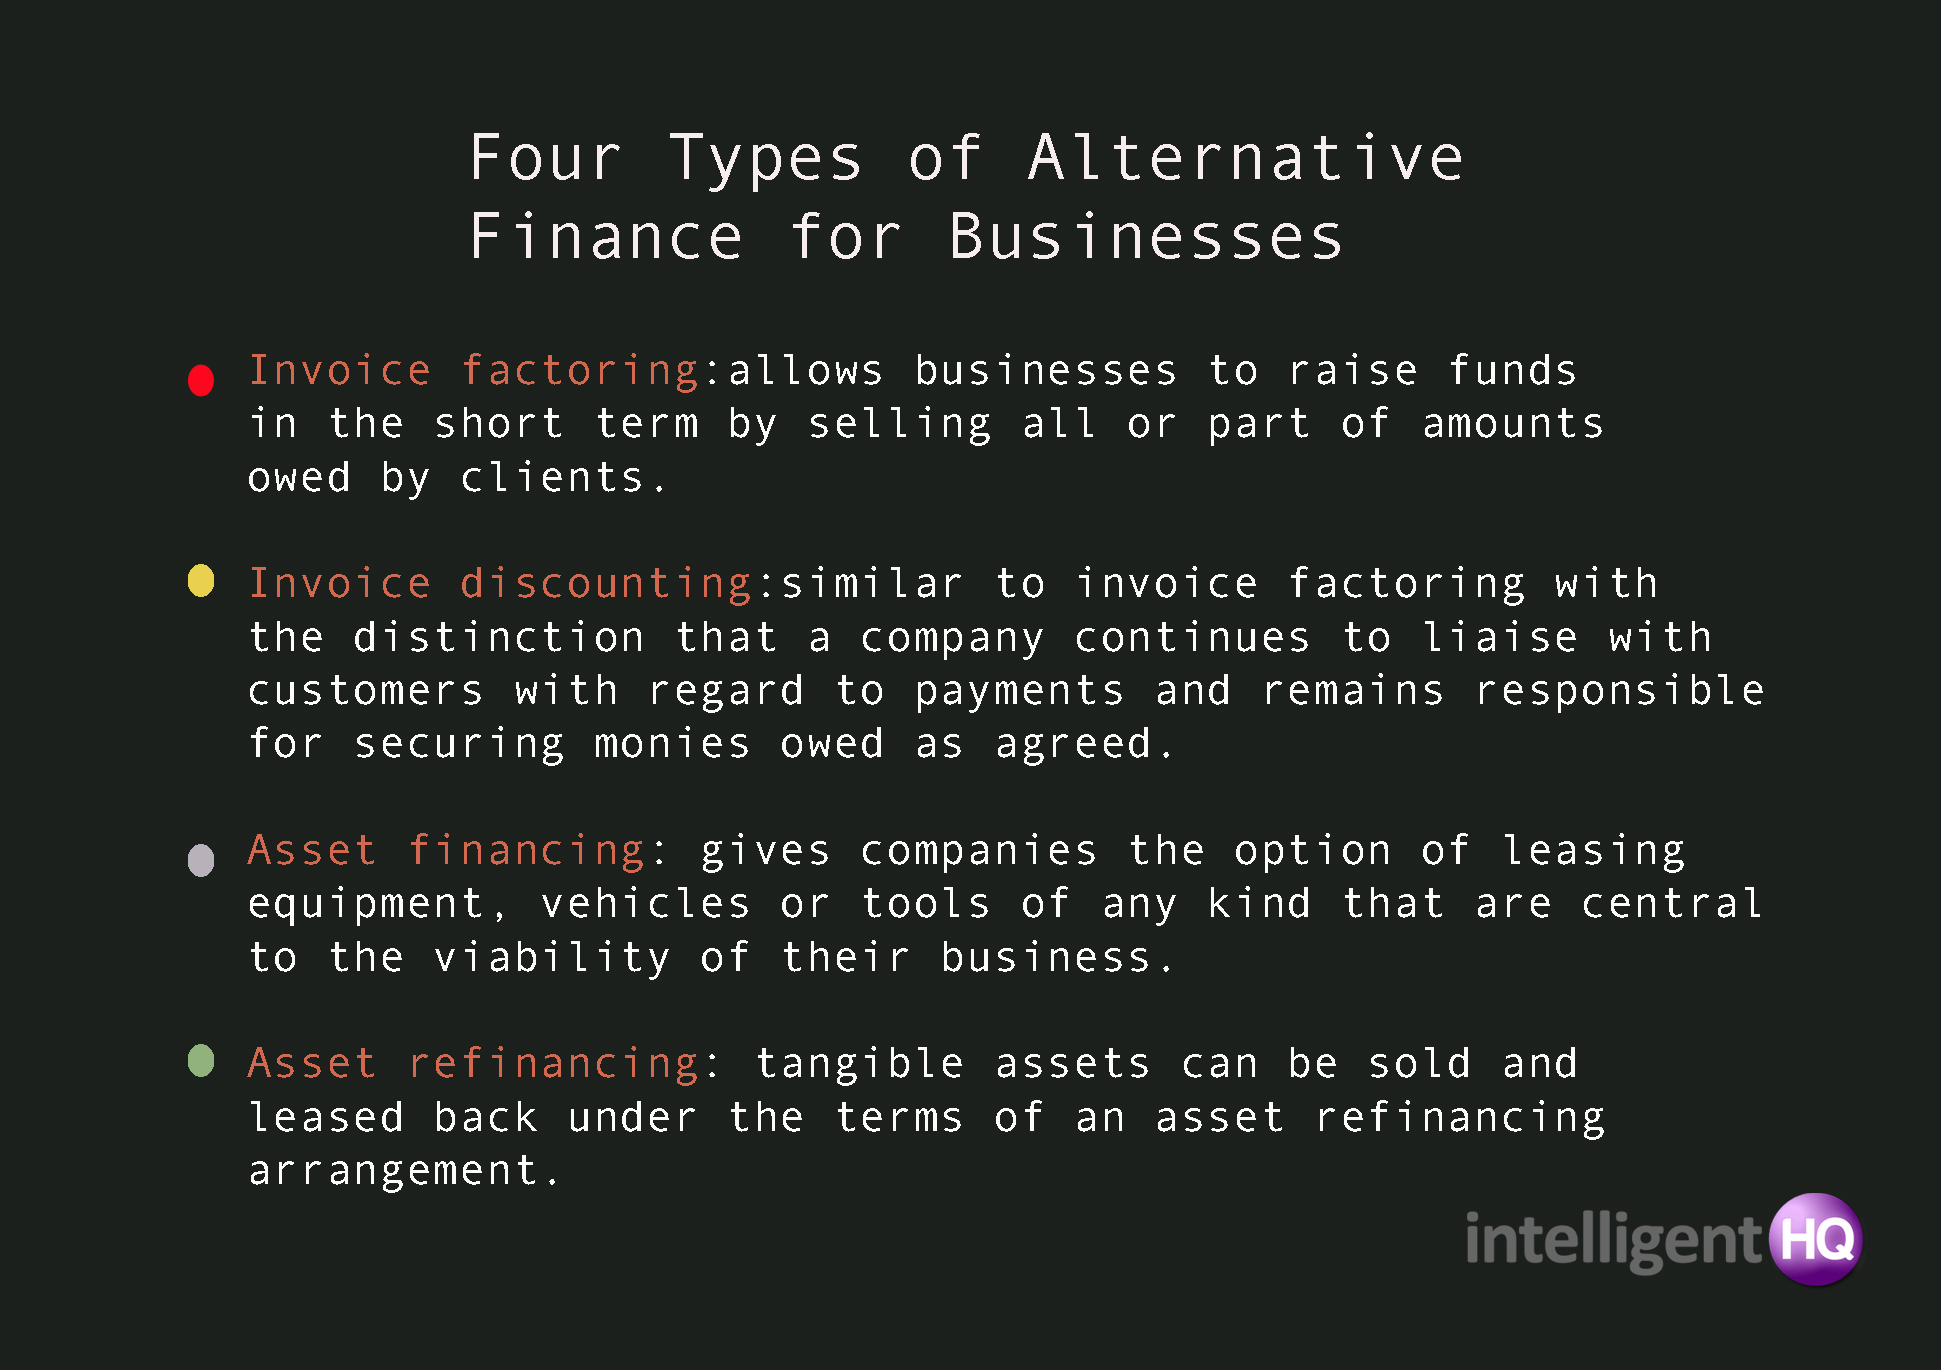 Four Types of Alternative Finance for Businesses